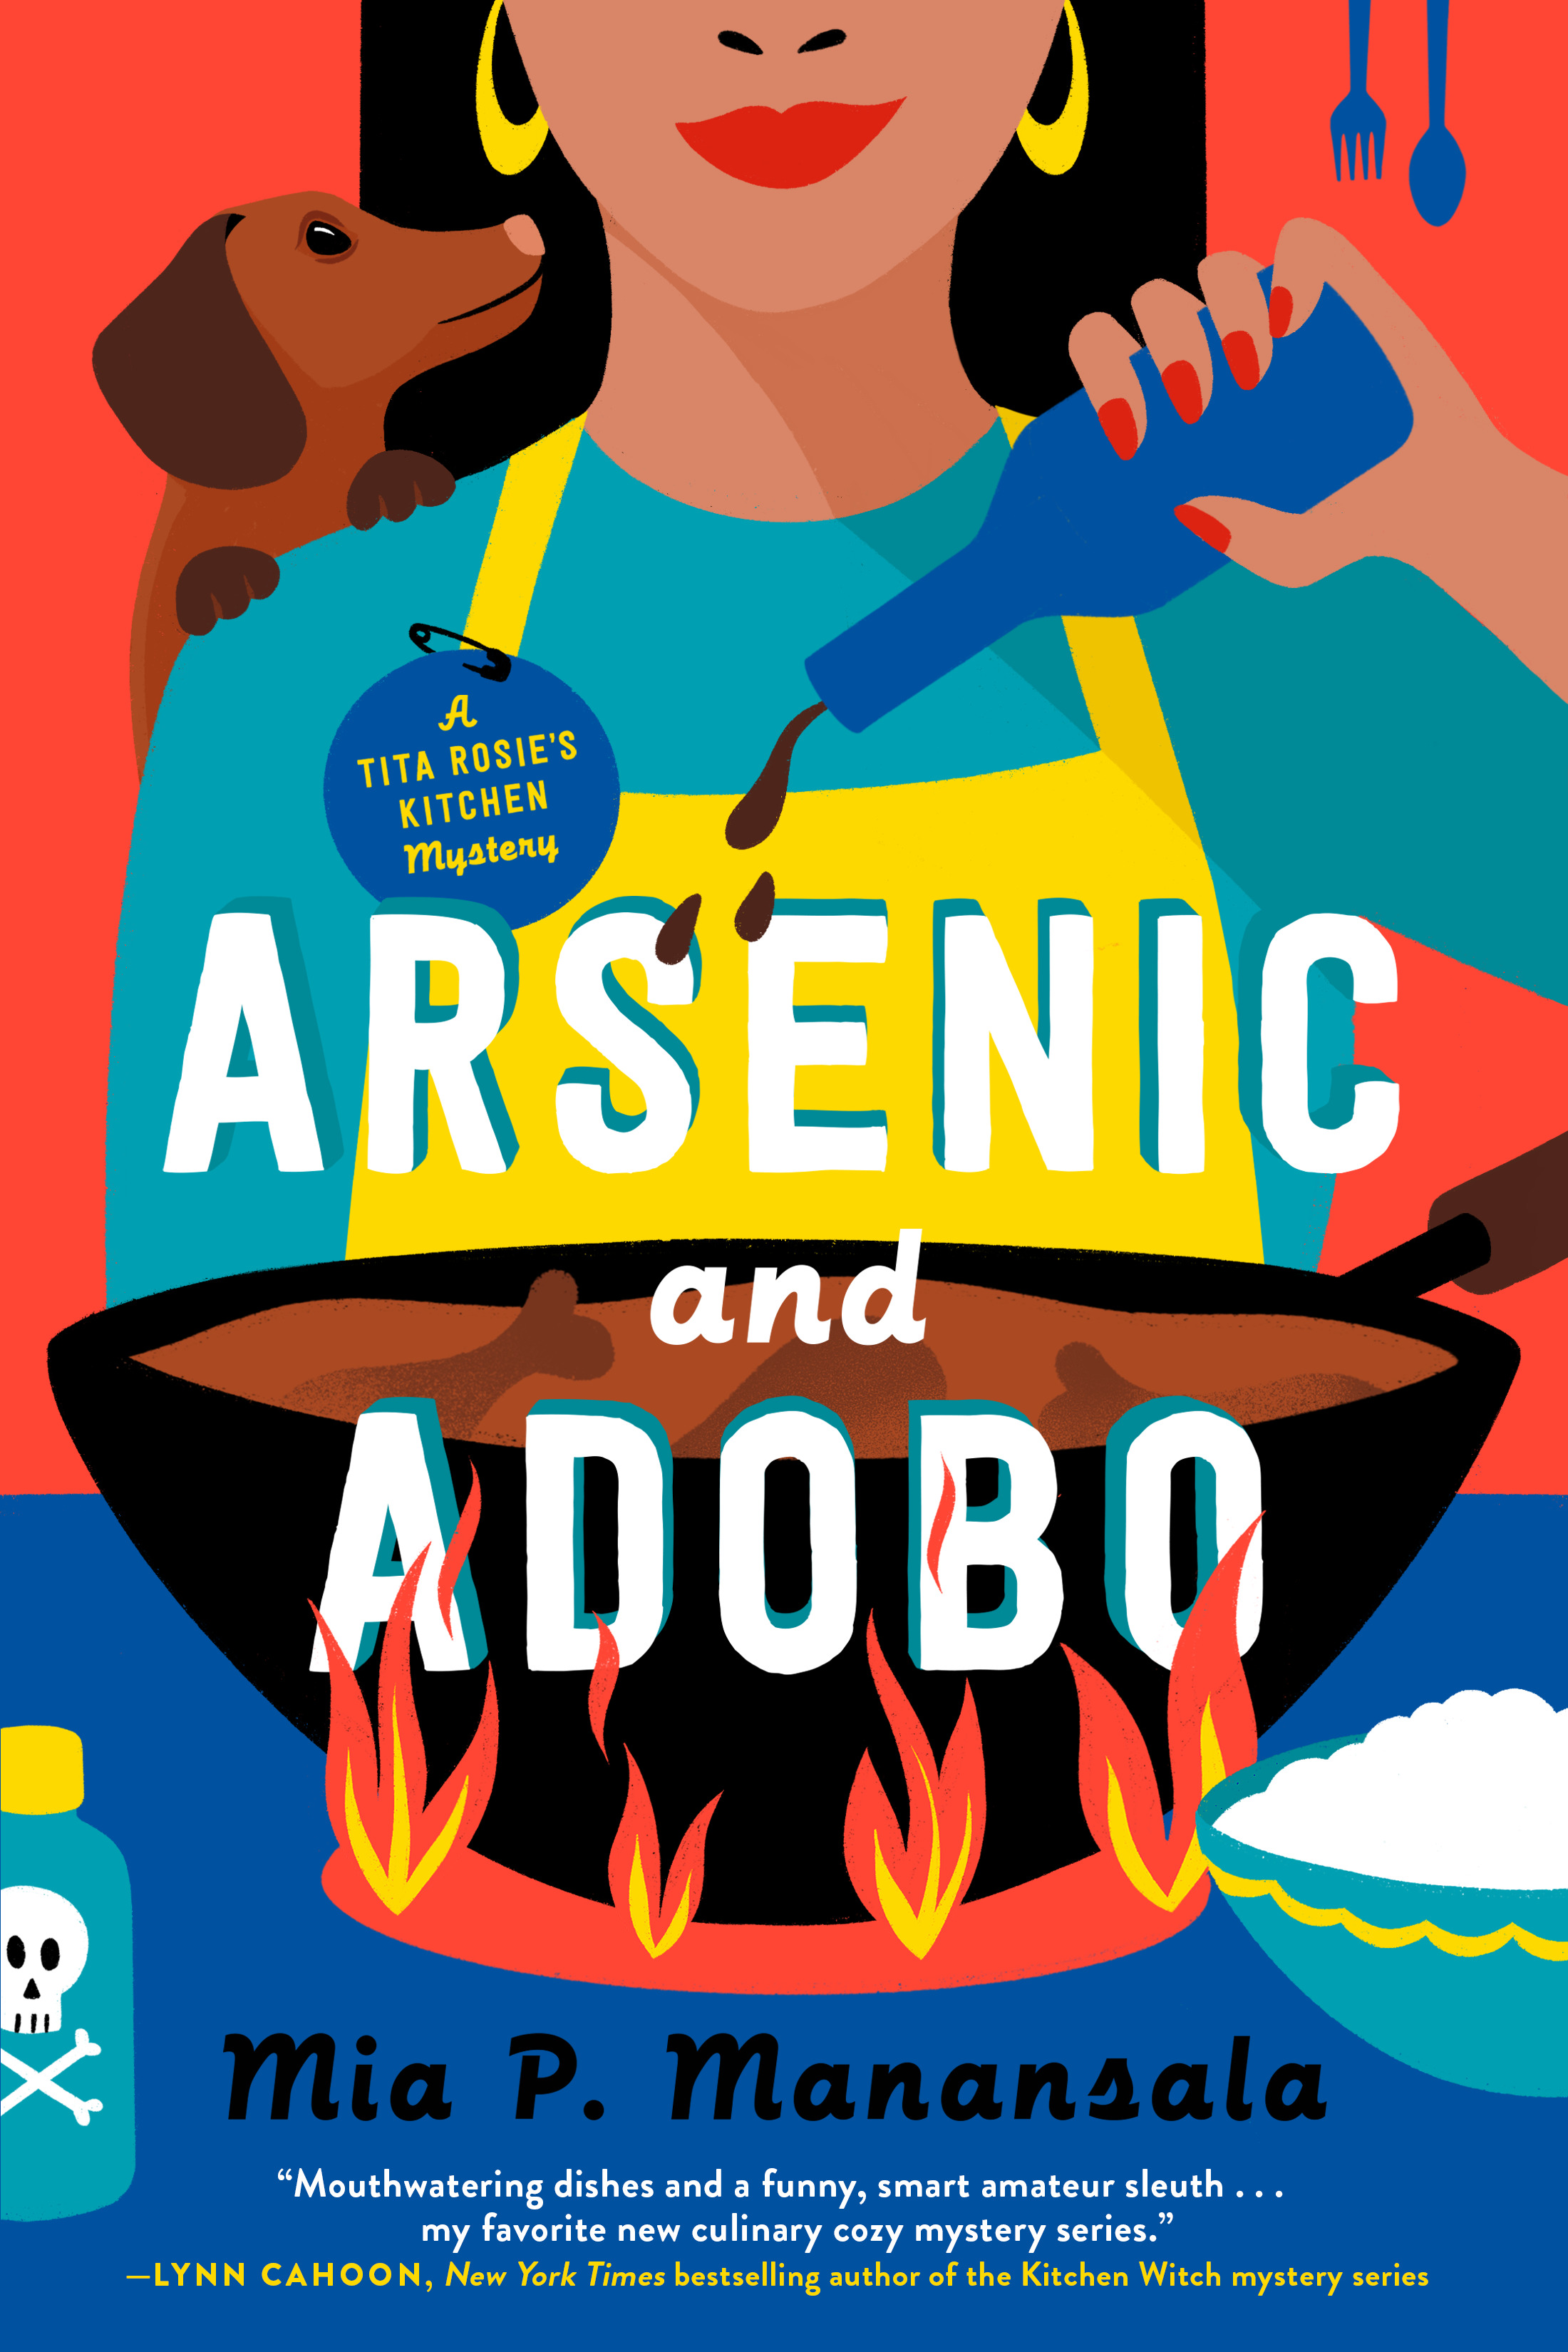 Book cover: Arsenic and Adobo by Mia P. Manansala